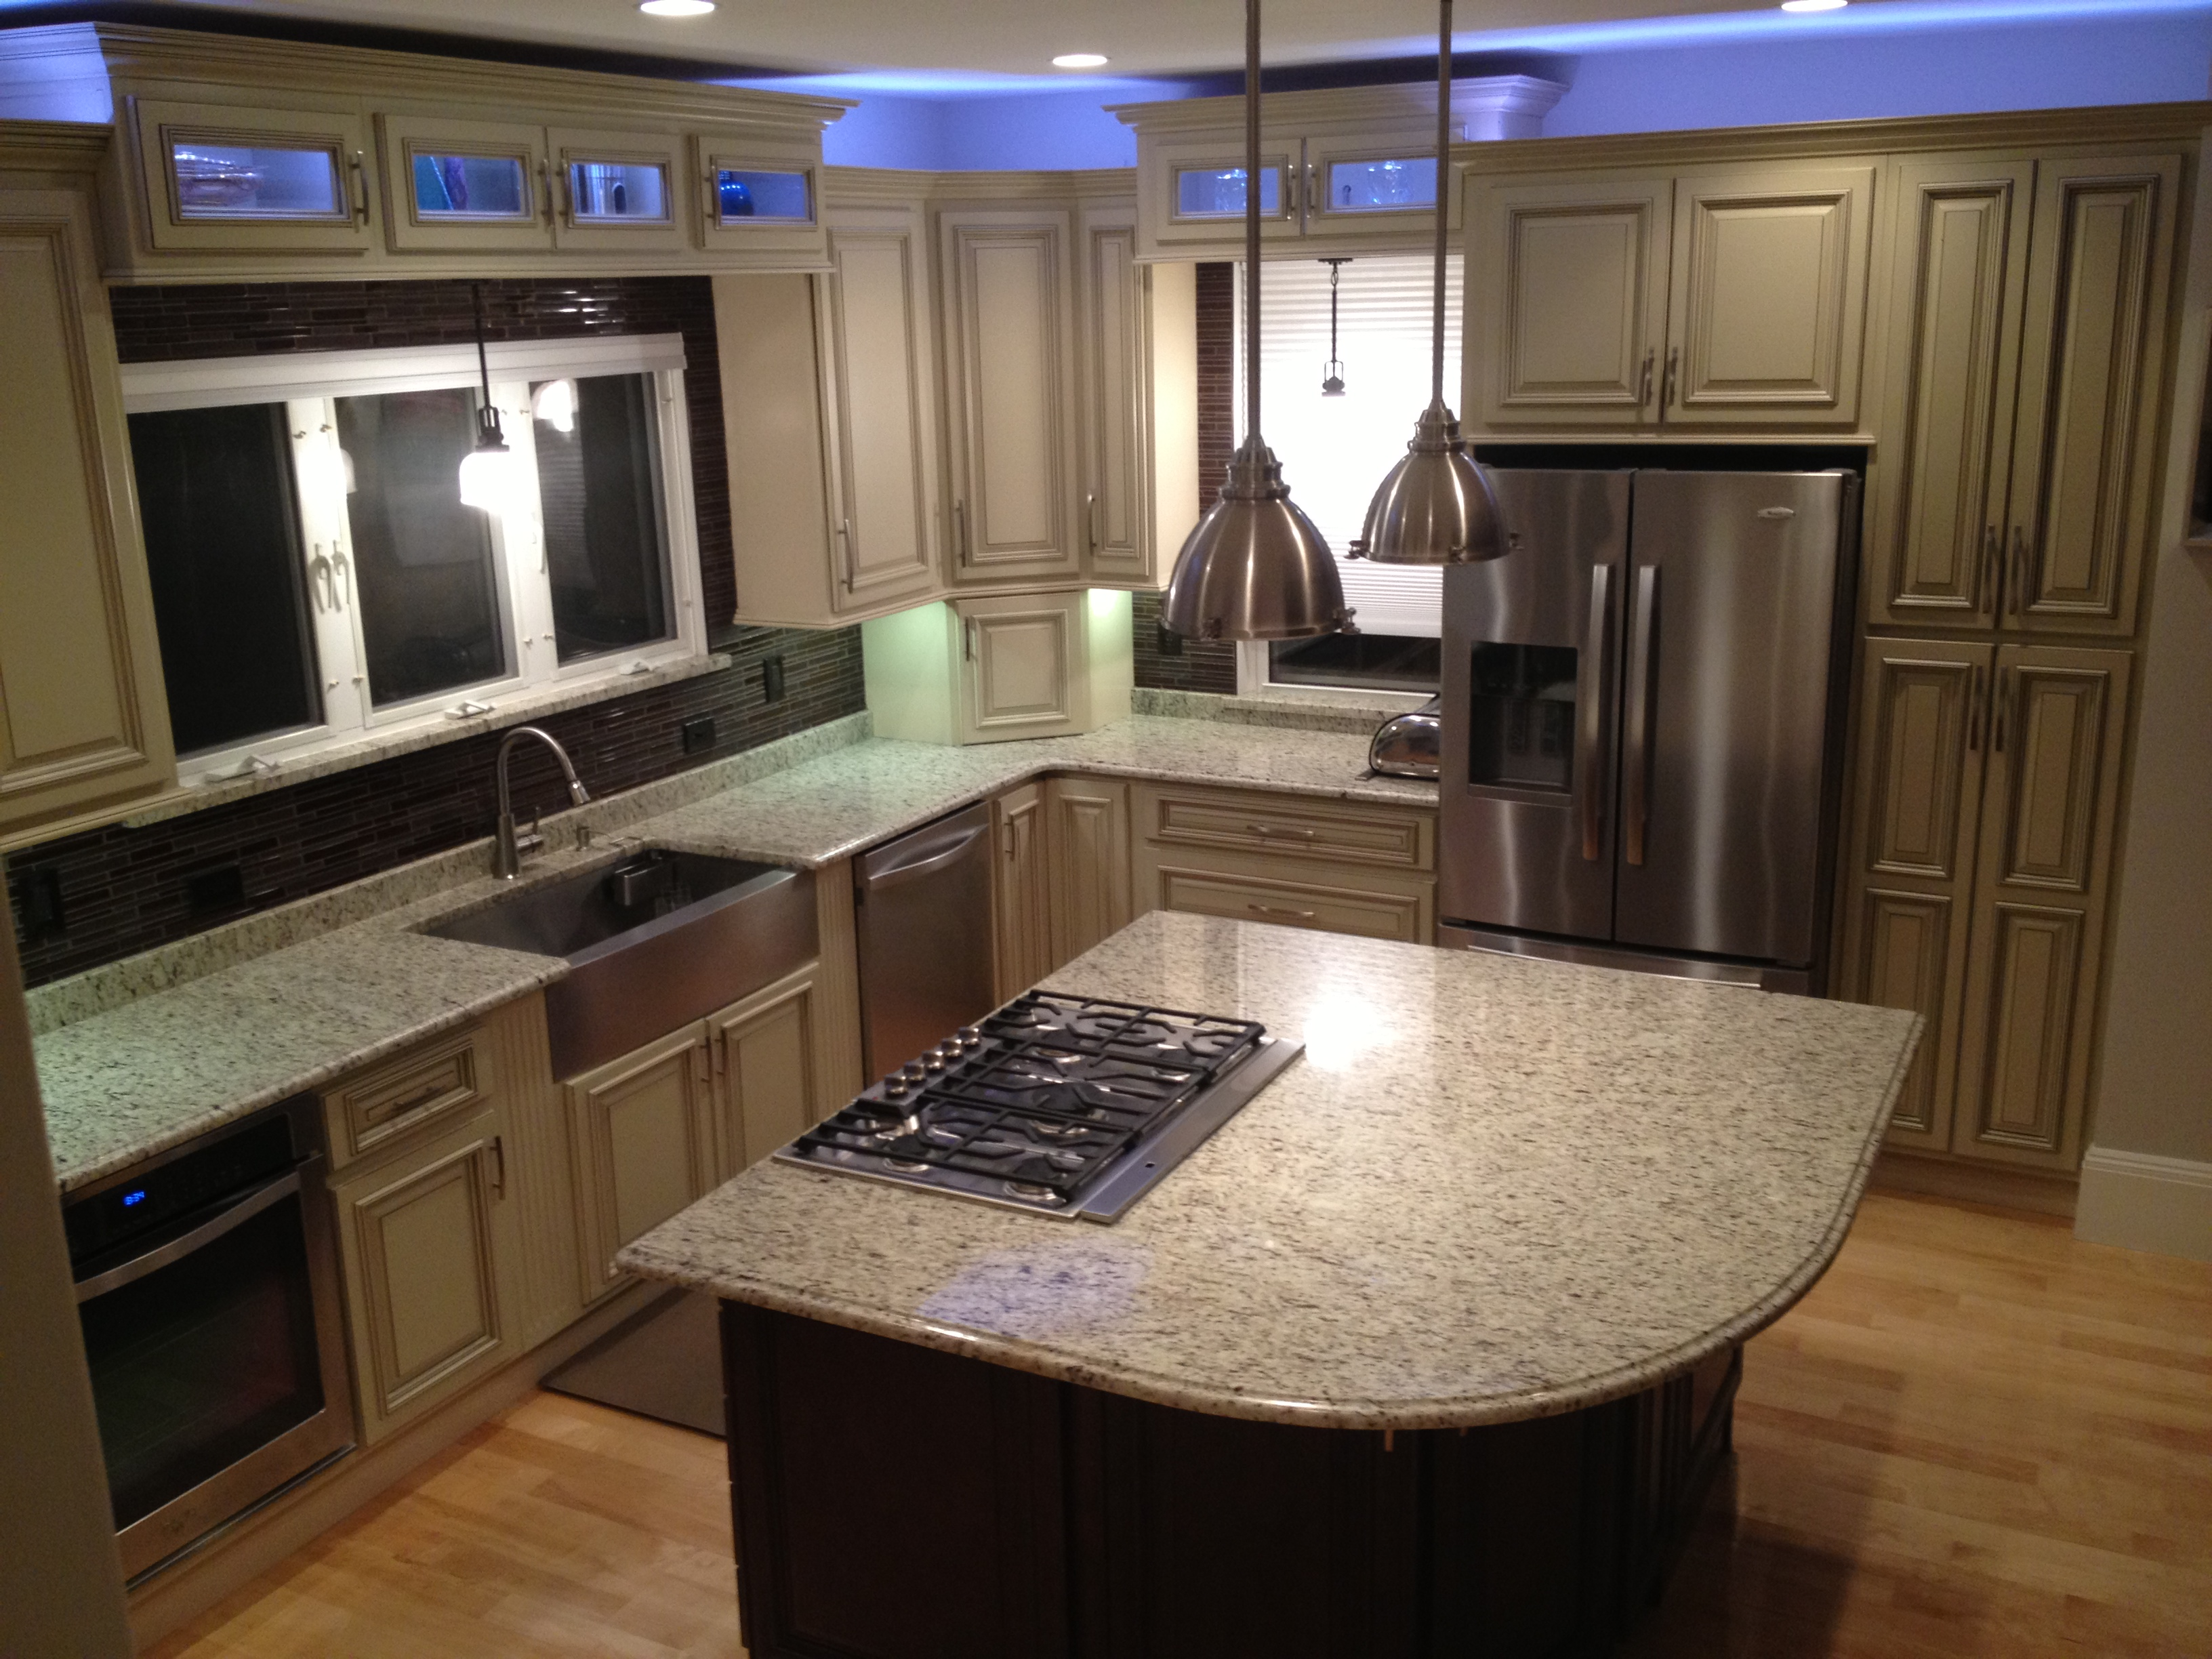 light or dark finished cabinets which should you buy light kitchen cabinets Advantages of light finished kitchen cabinets Cherry Finished cabinets